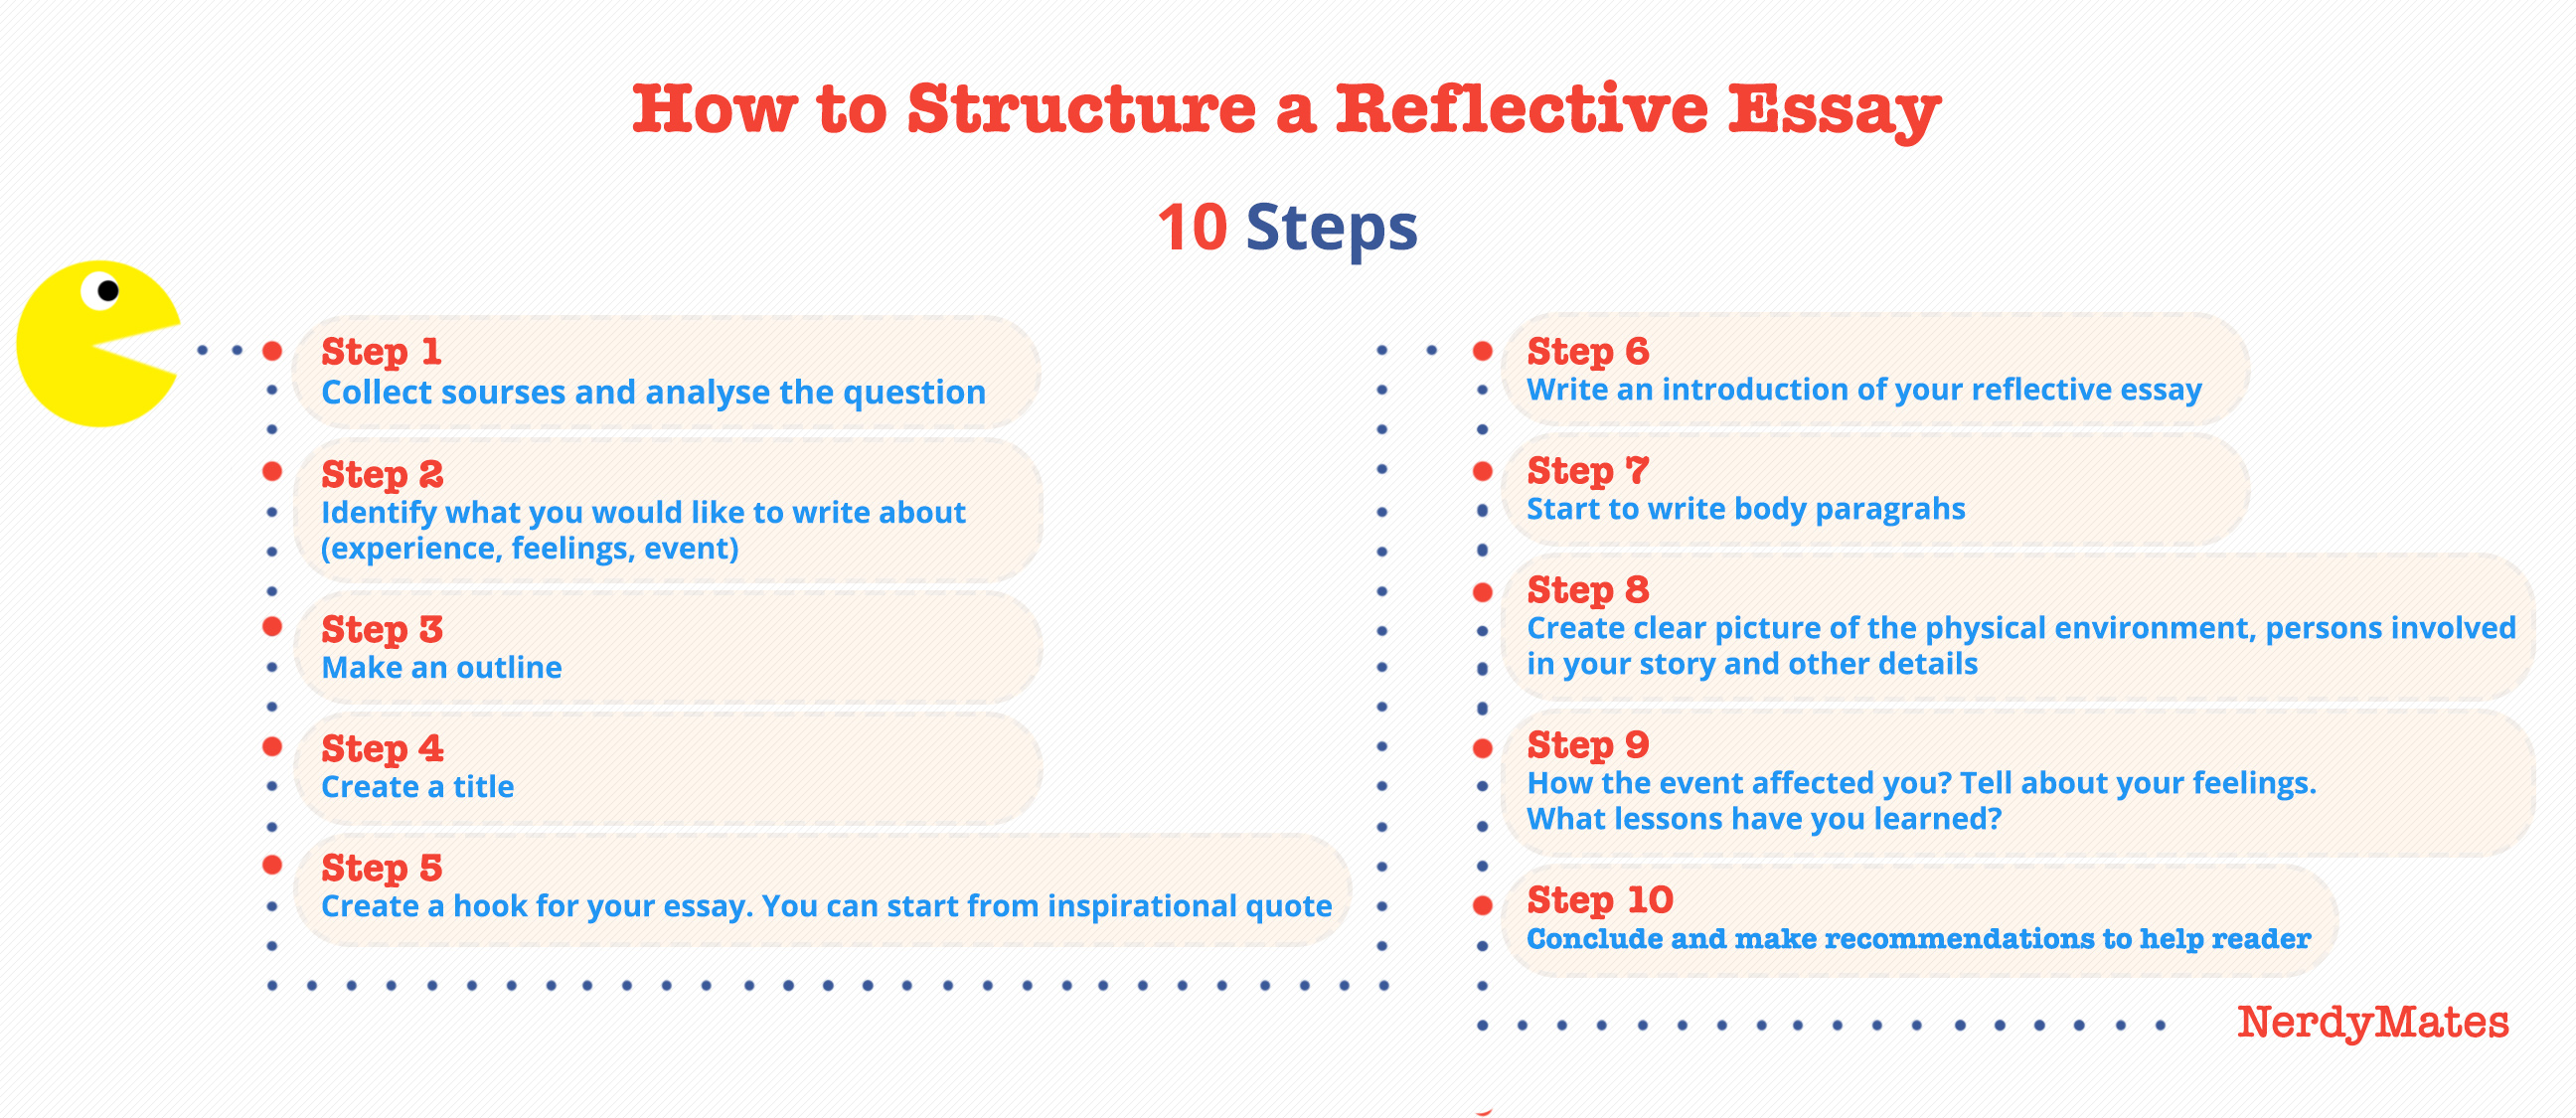 how to write an a reflective essay nerdymates com a reflective essay shows how the person changed over time and what factors played an important role in those metamorphoses